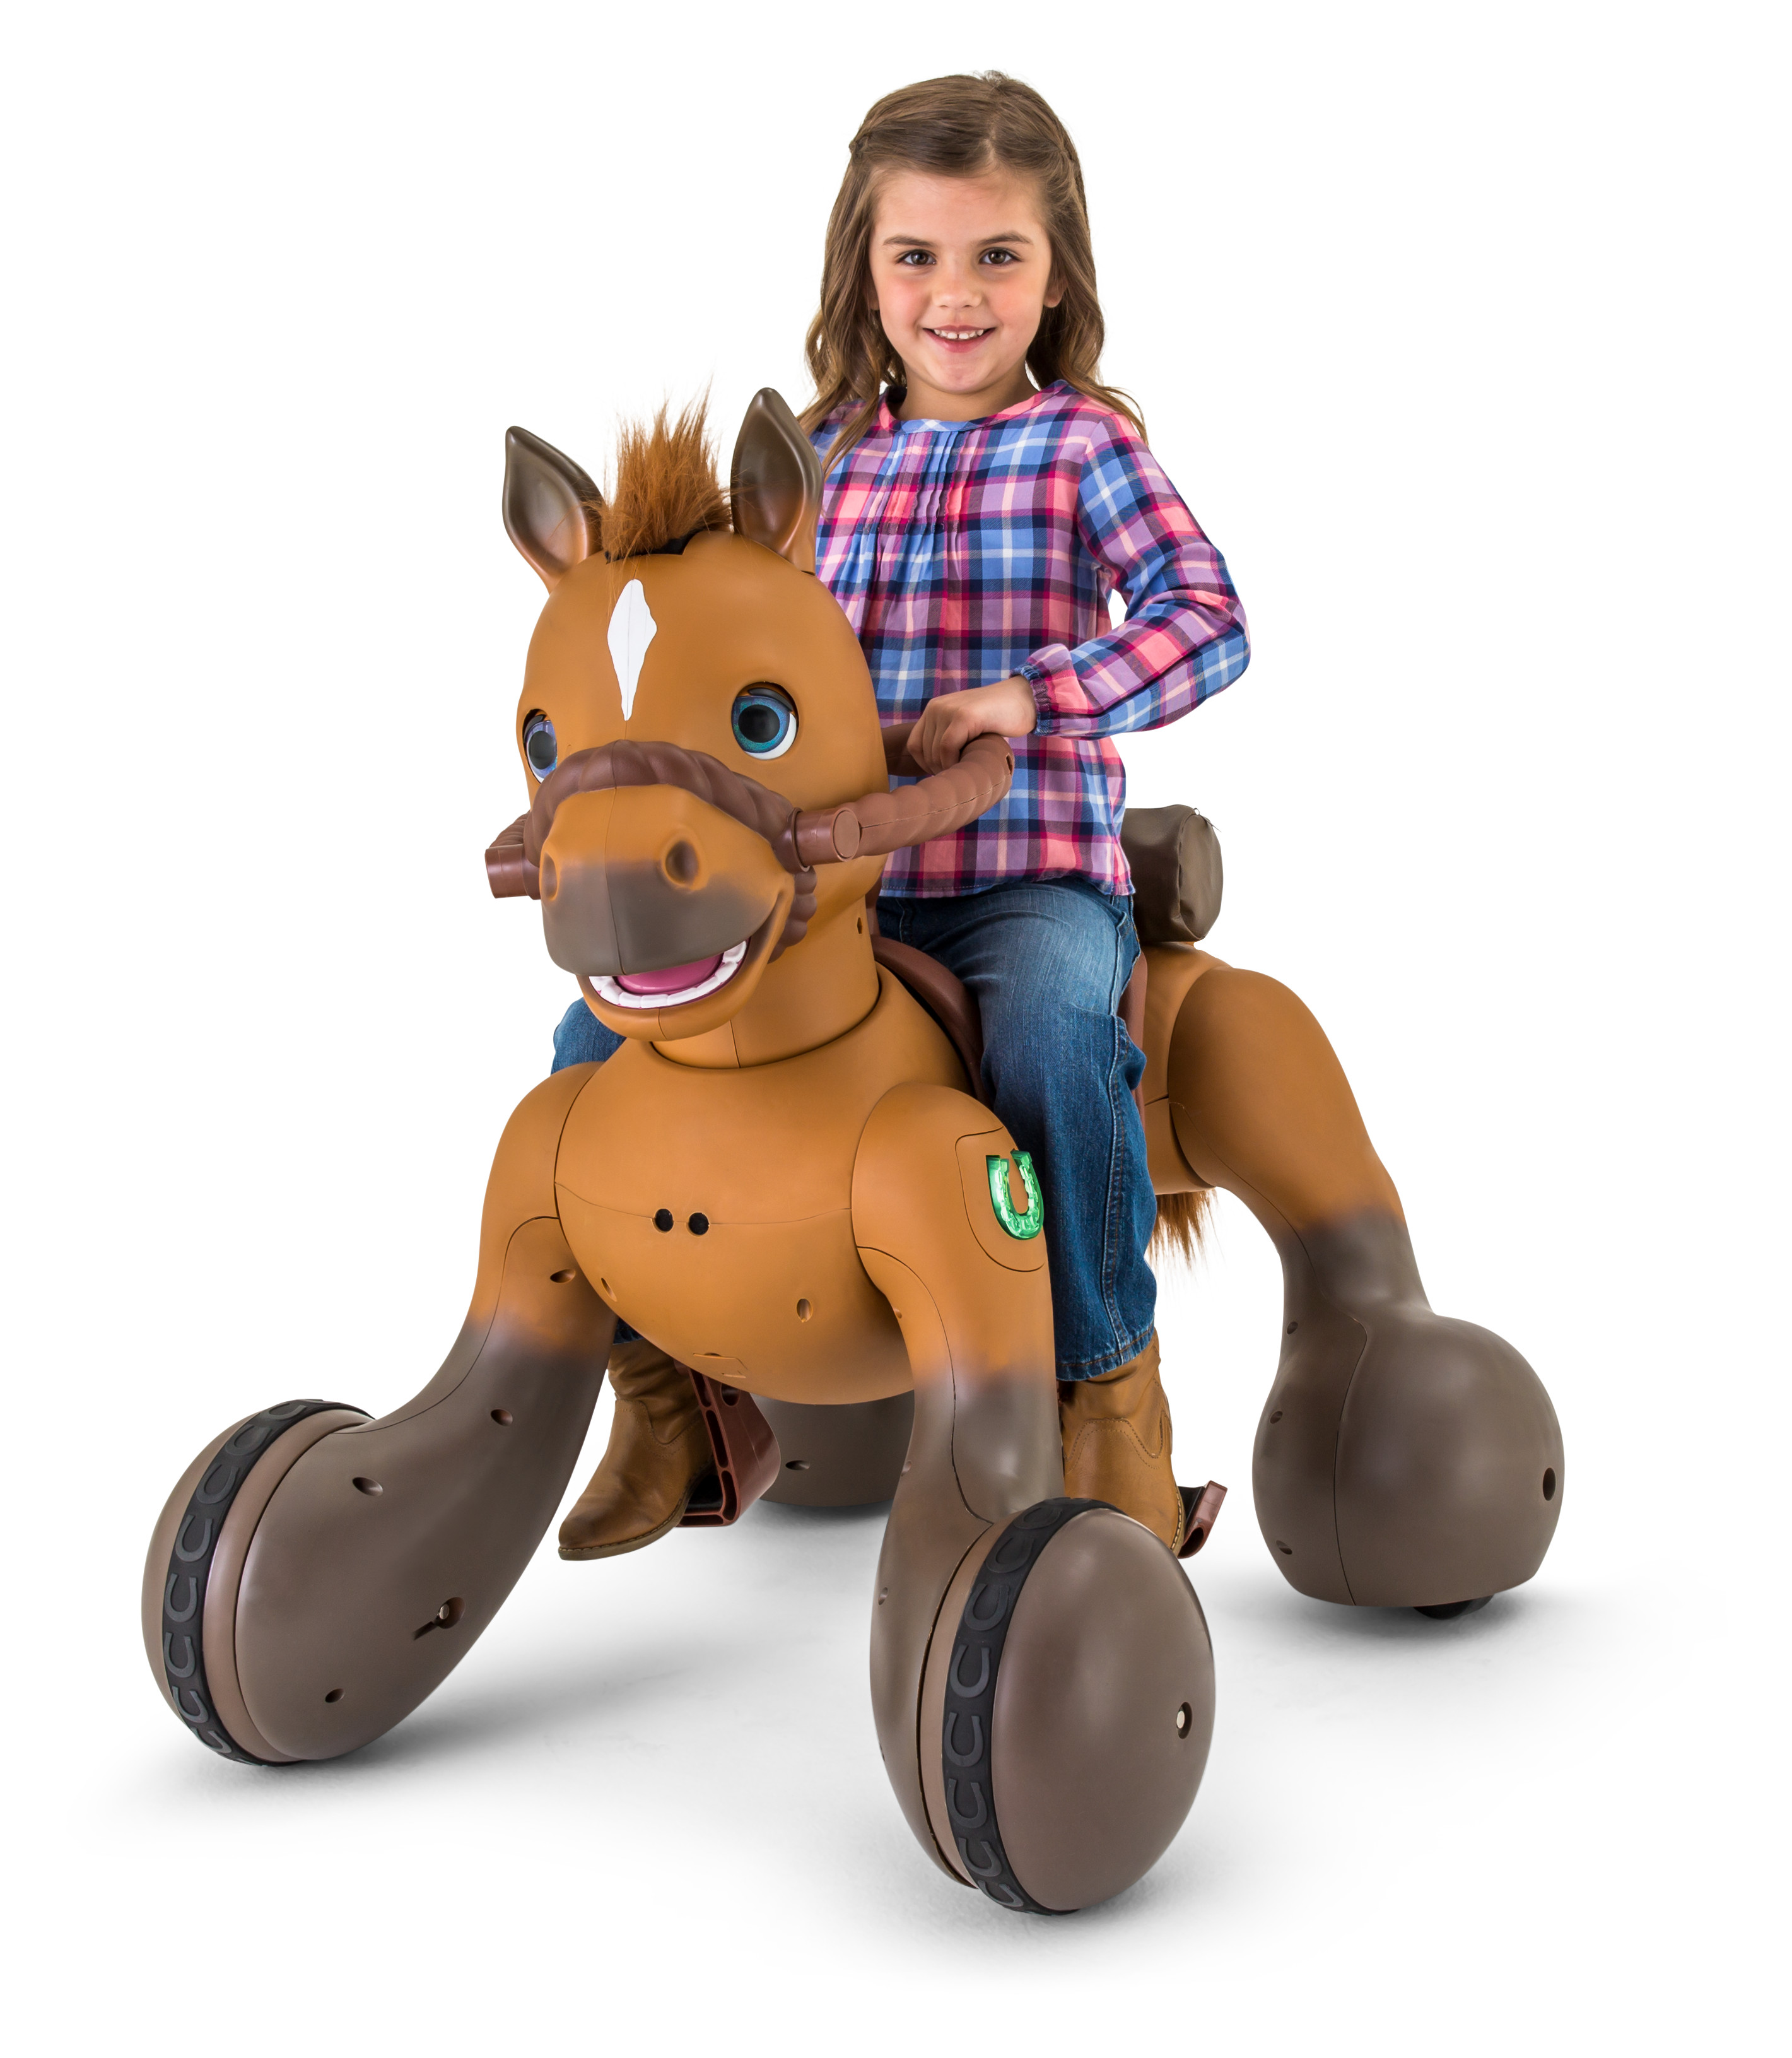 12-Volt Rideamals Scout Pony Interactive Ride-On Toy by Kid Trax by Pacific Cycle